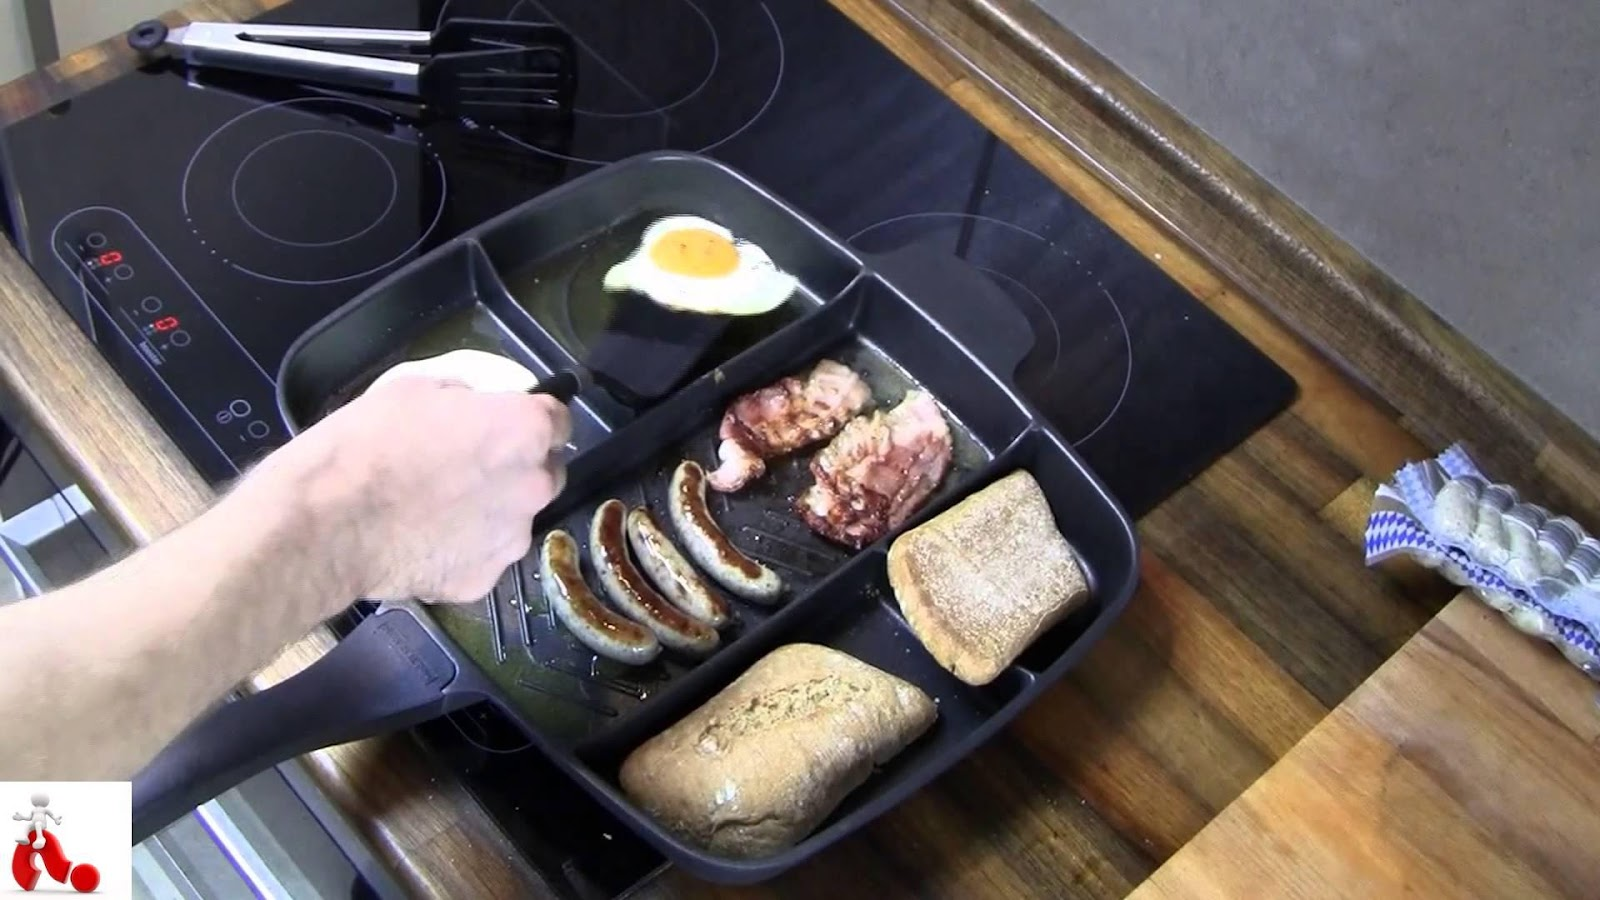 A Master Pan, Master Pan, Pan, Gigantic Pile, Gigantic, Pile, Smart Cooking, Cooking in Less Time, Easy Cooking